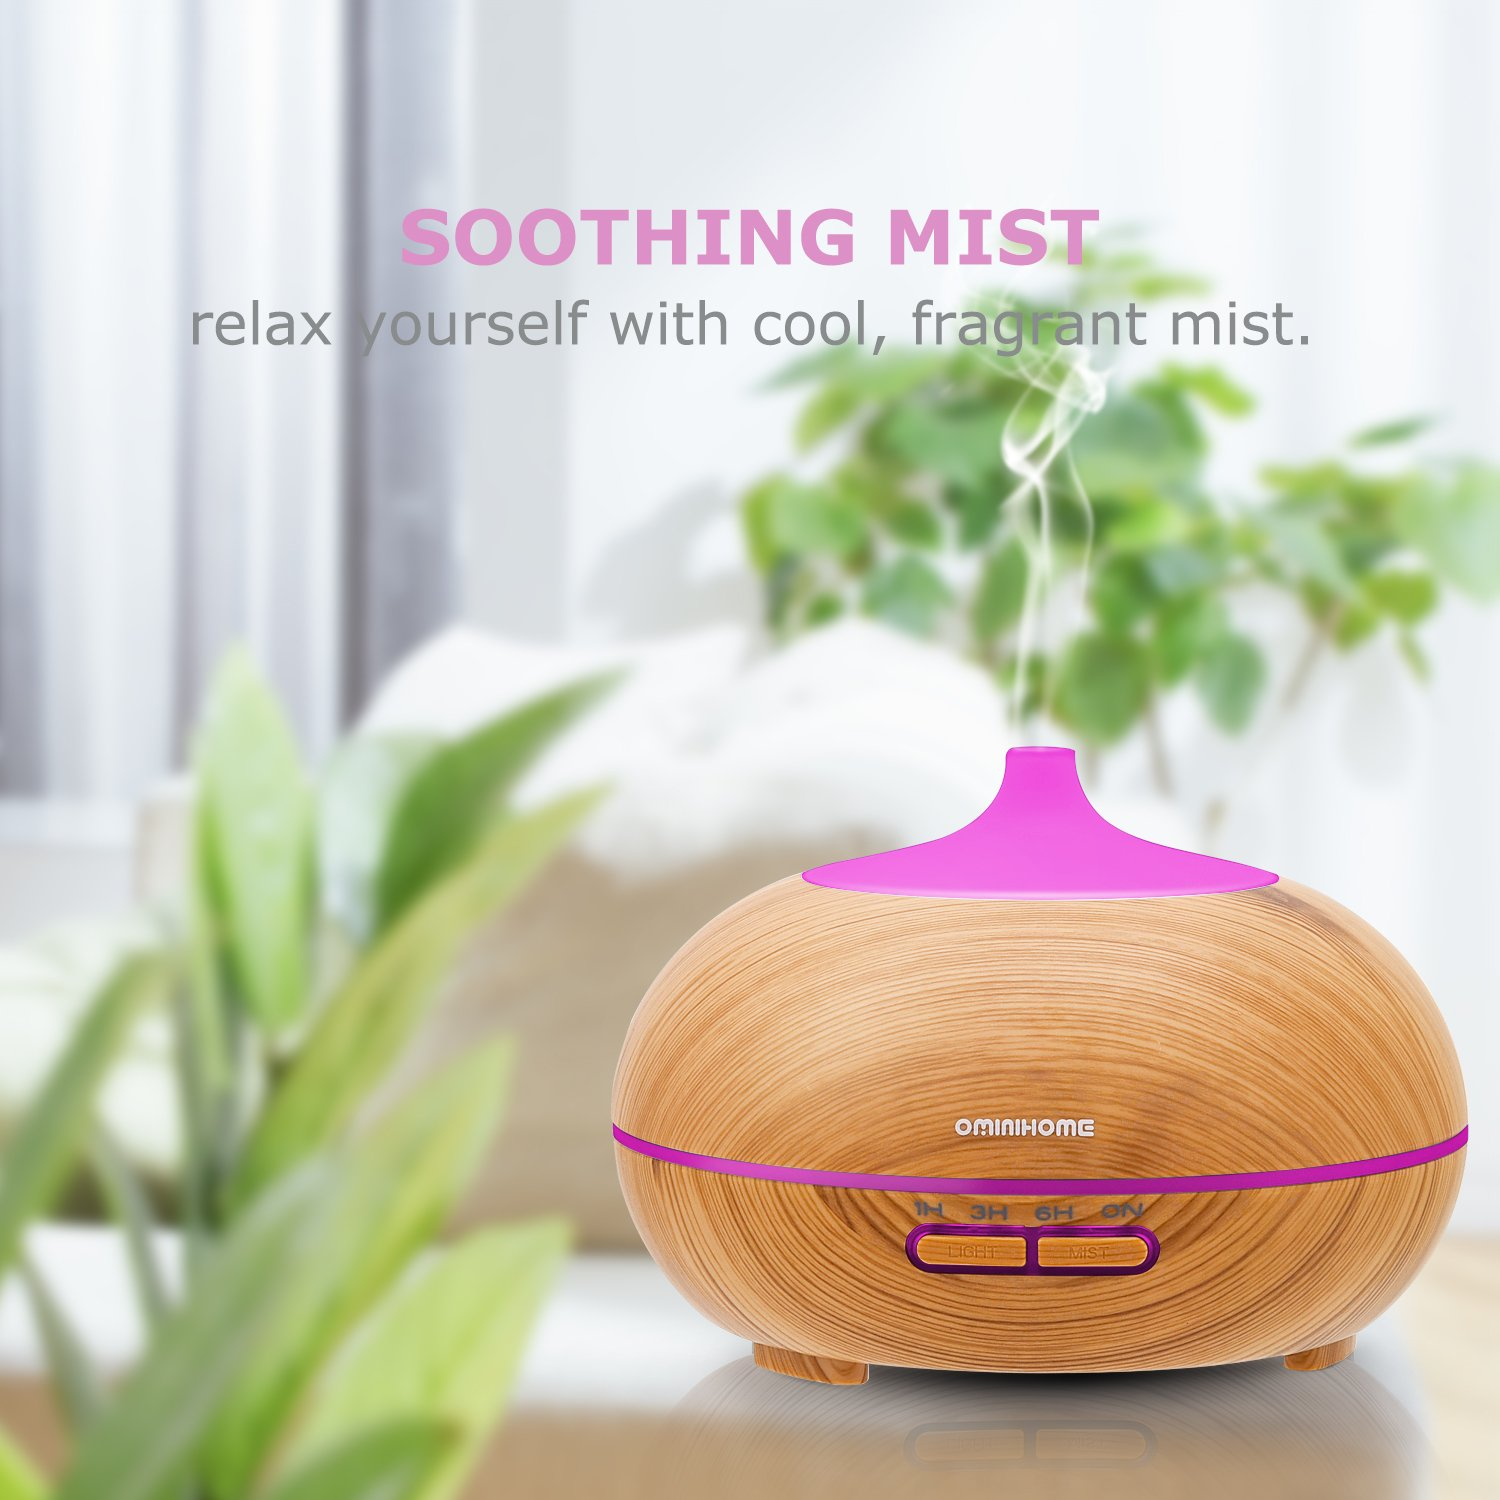 Ominihome Aromatherapy Essential Oil Diffuser, Wood Grain 300ml, 4 Time Setting, Ultrasonic Cool Mist Humidifier for Home, Office, Spa Baby, Yoga (shallow wood grain)